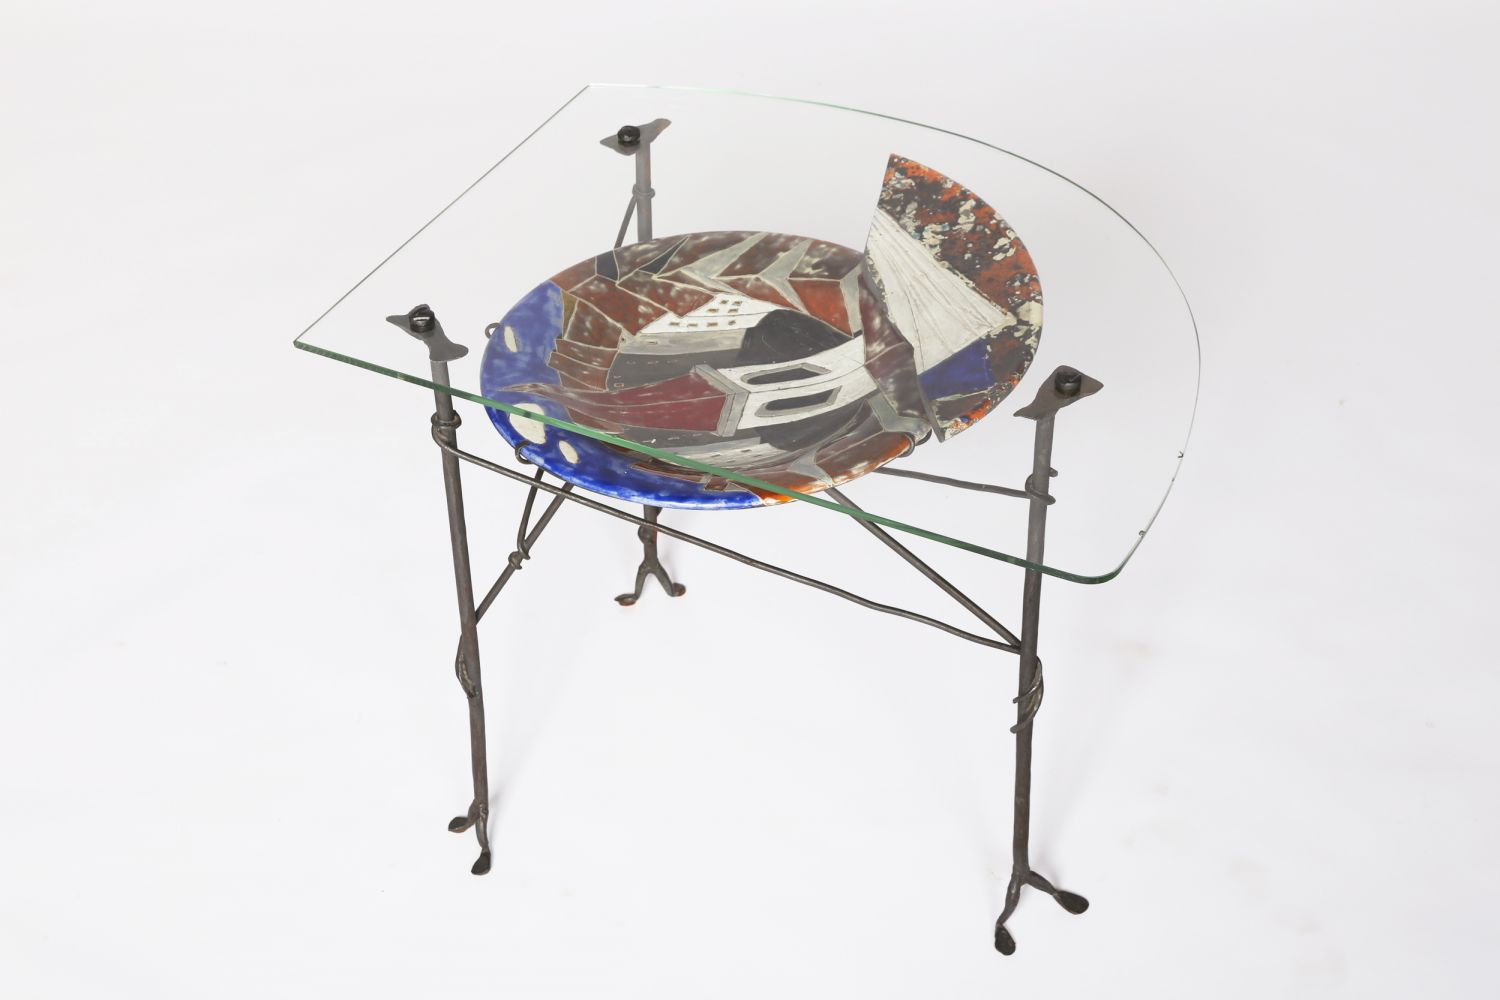 Les Archange' ceramic and glass coffee table, full view from above